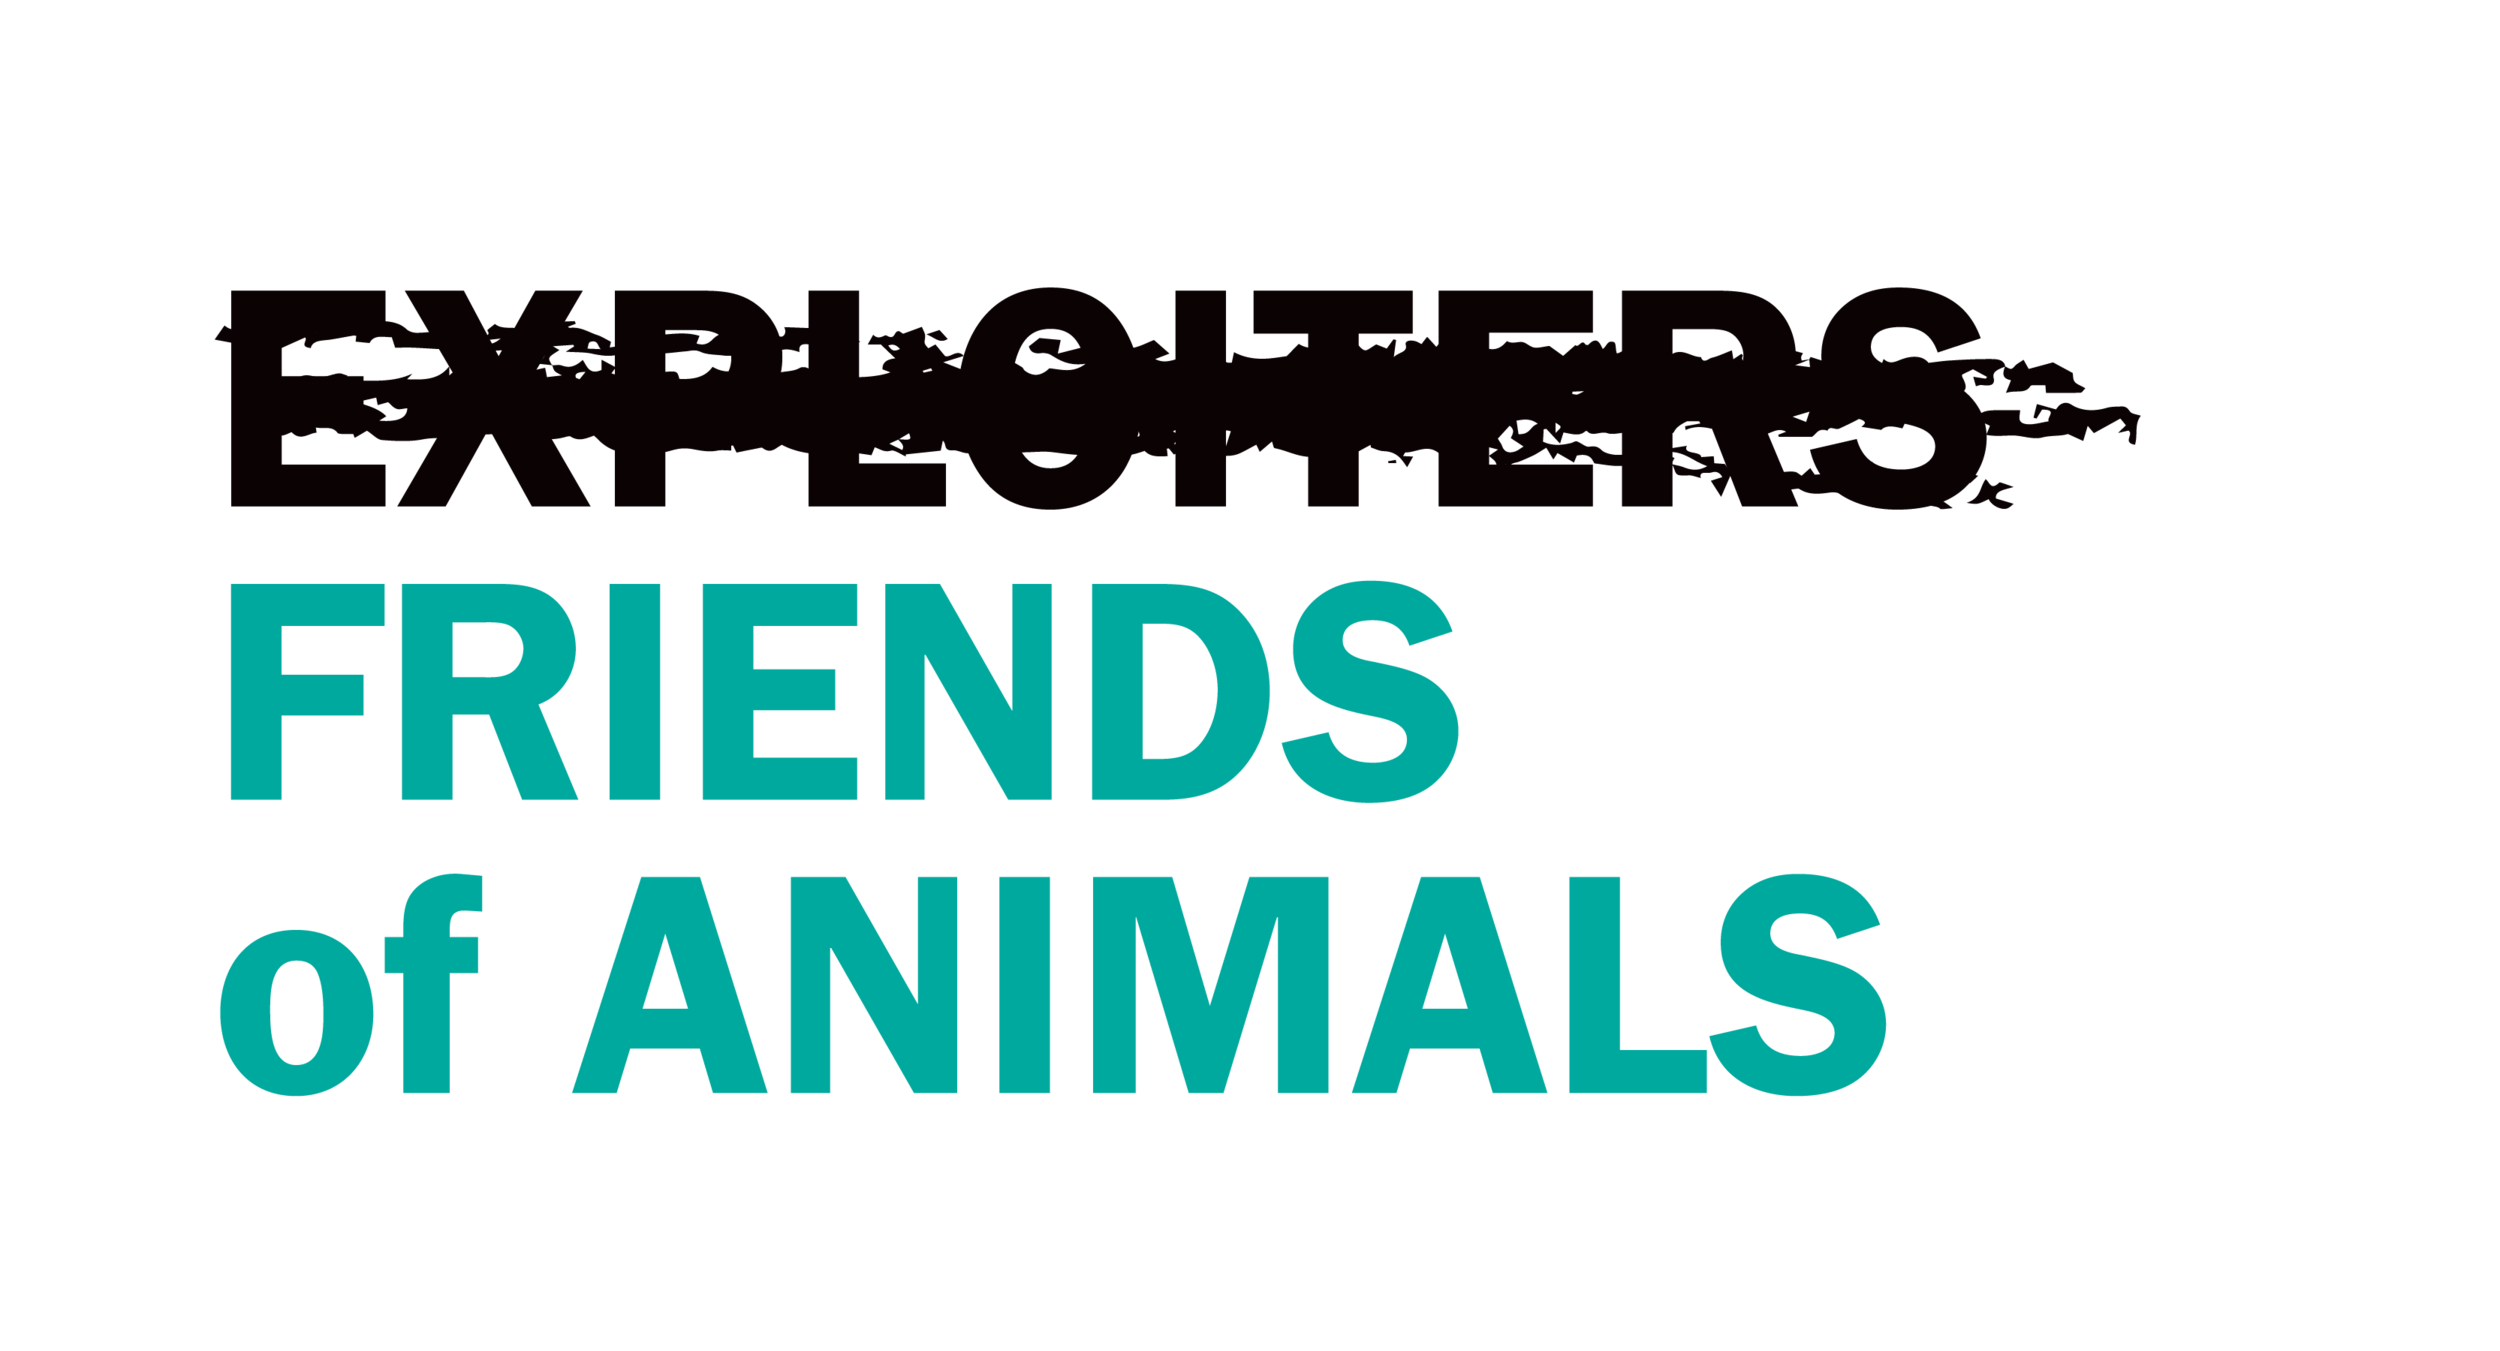 Friends-of-animals.png